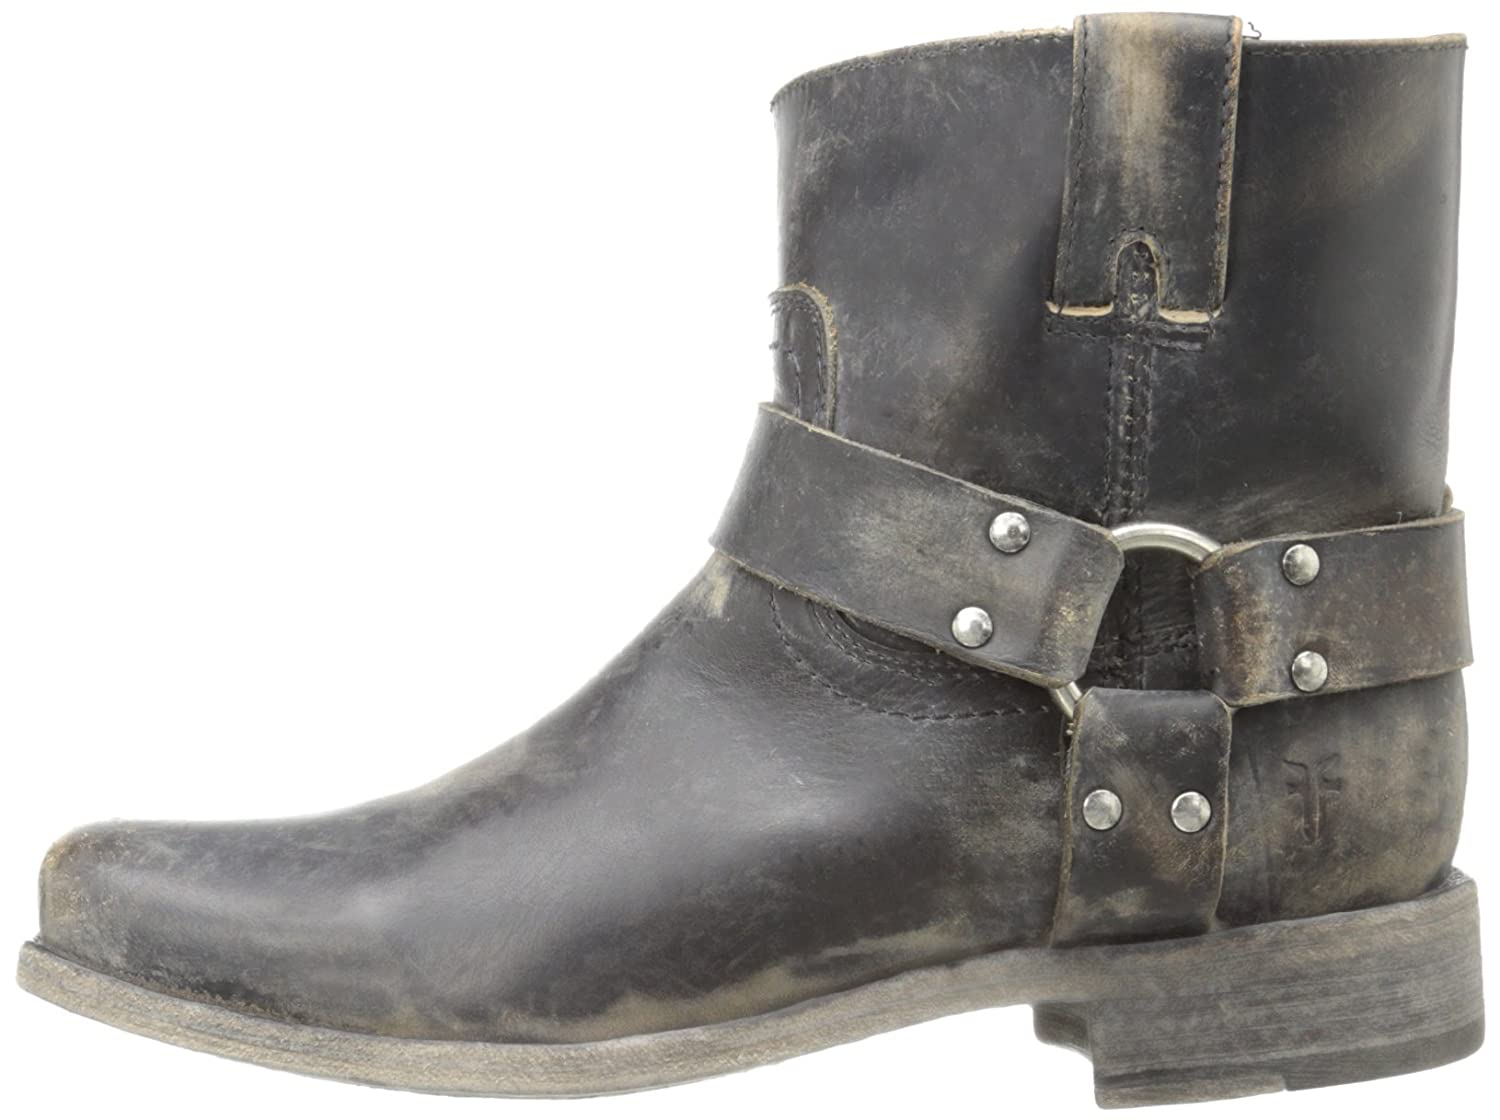 6fa09ae5a9d3 FRYE Women's Smith Harness Short Boot, Black Stone Wash, 11 M US: Buy  Online at Low Prices in India - Amazon.in